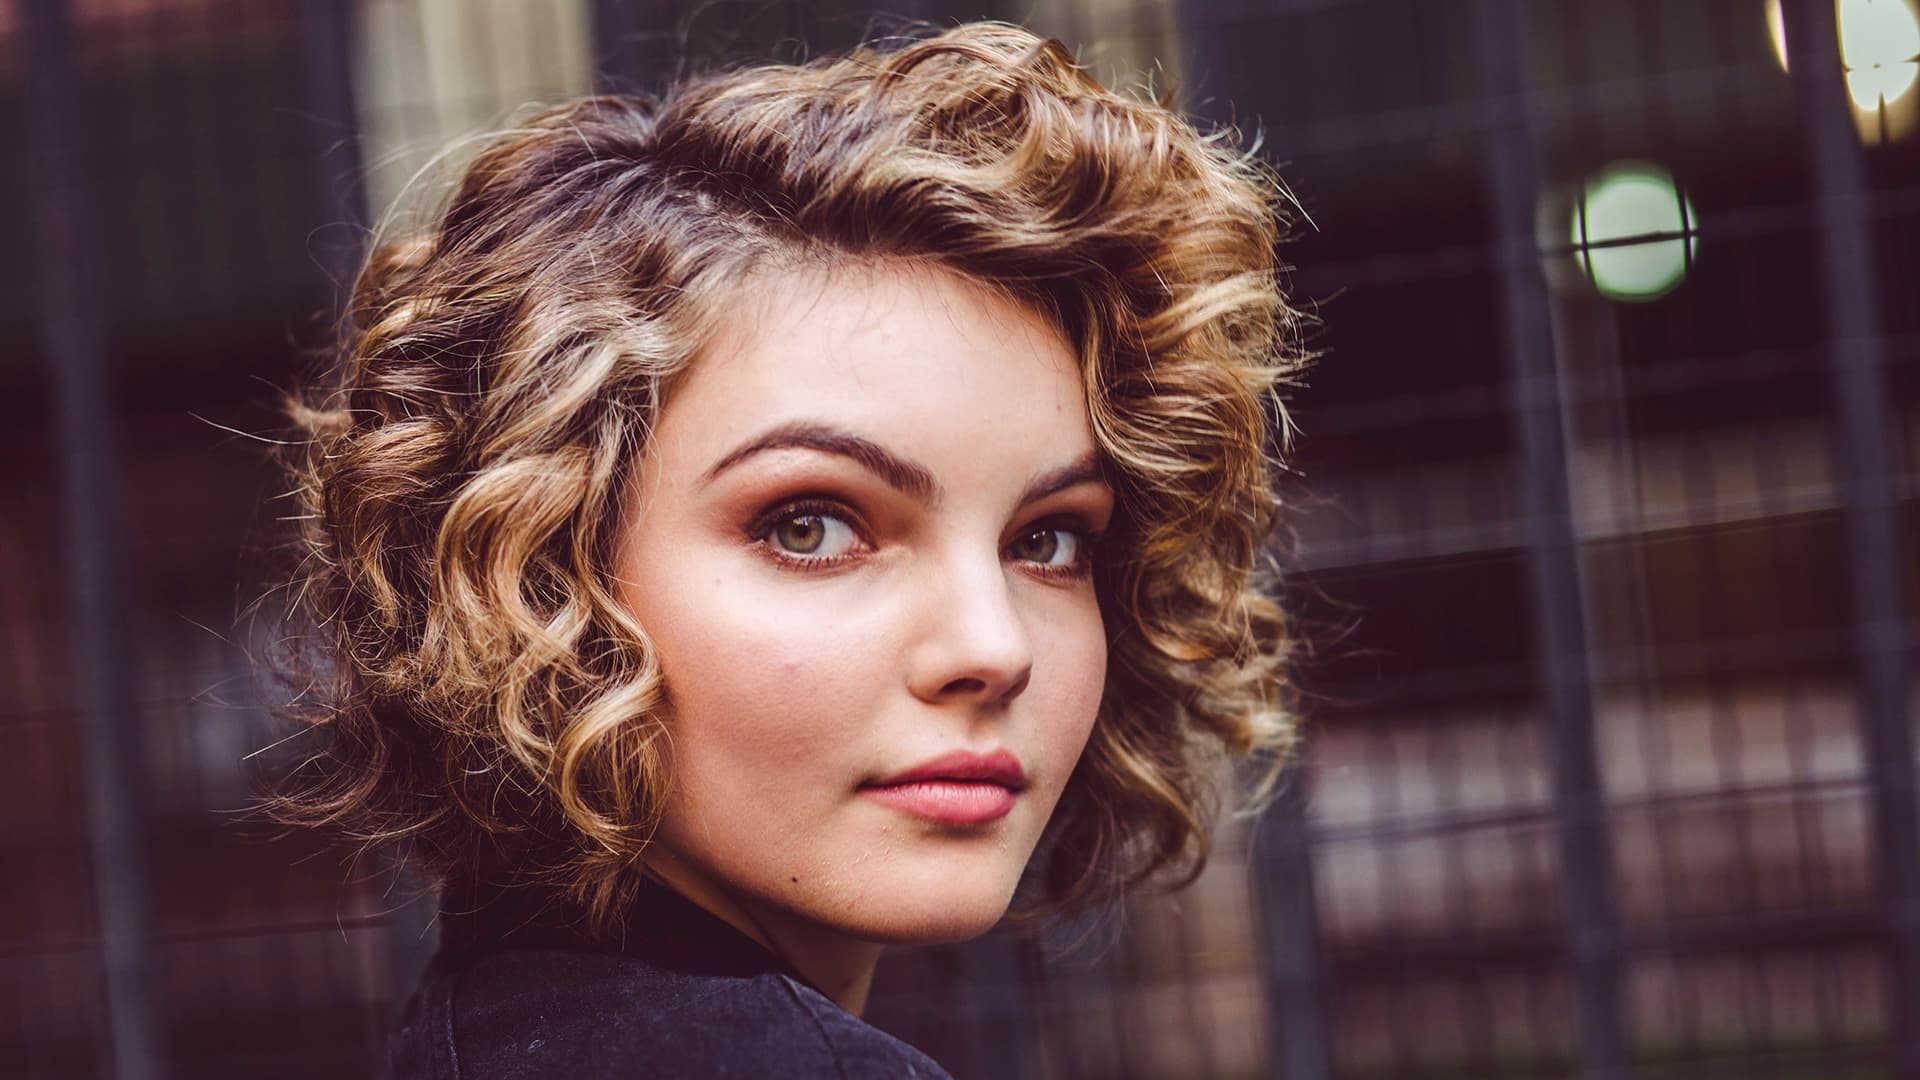 cute Camren Bicondova High Quality wallpaper